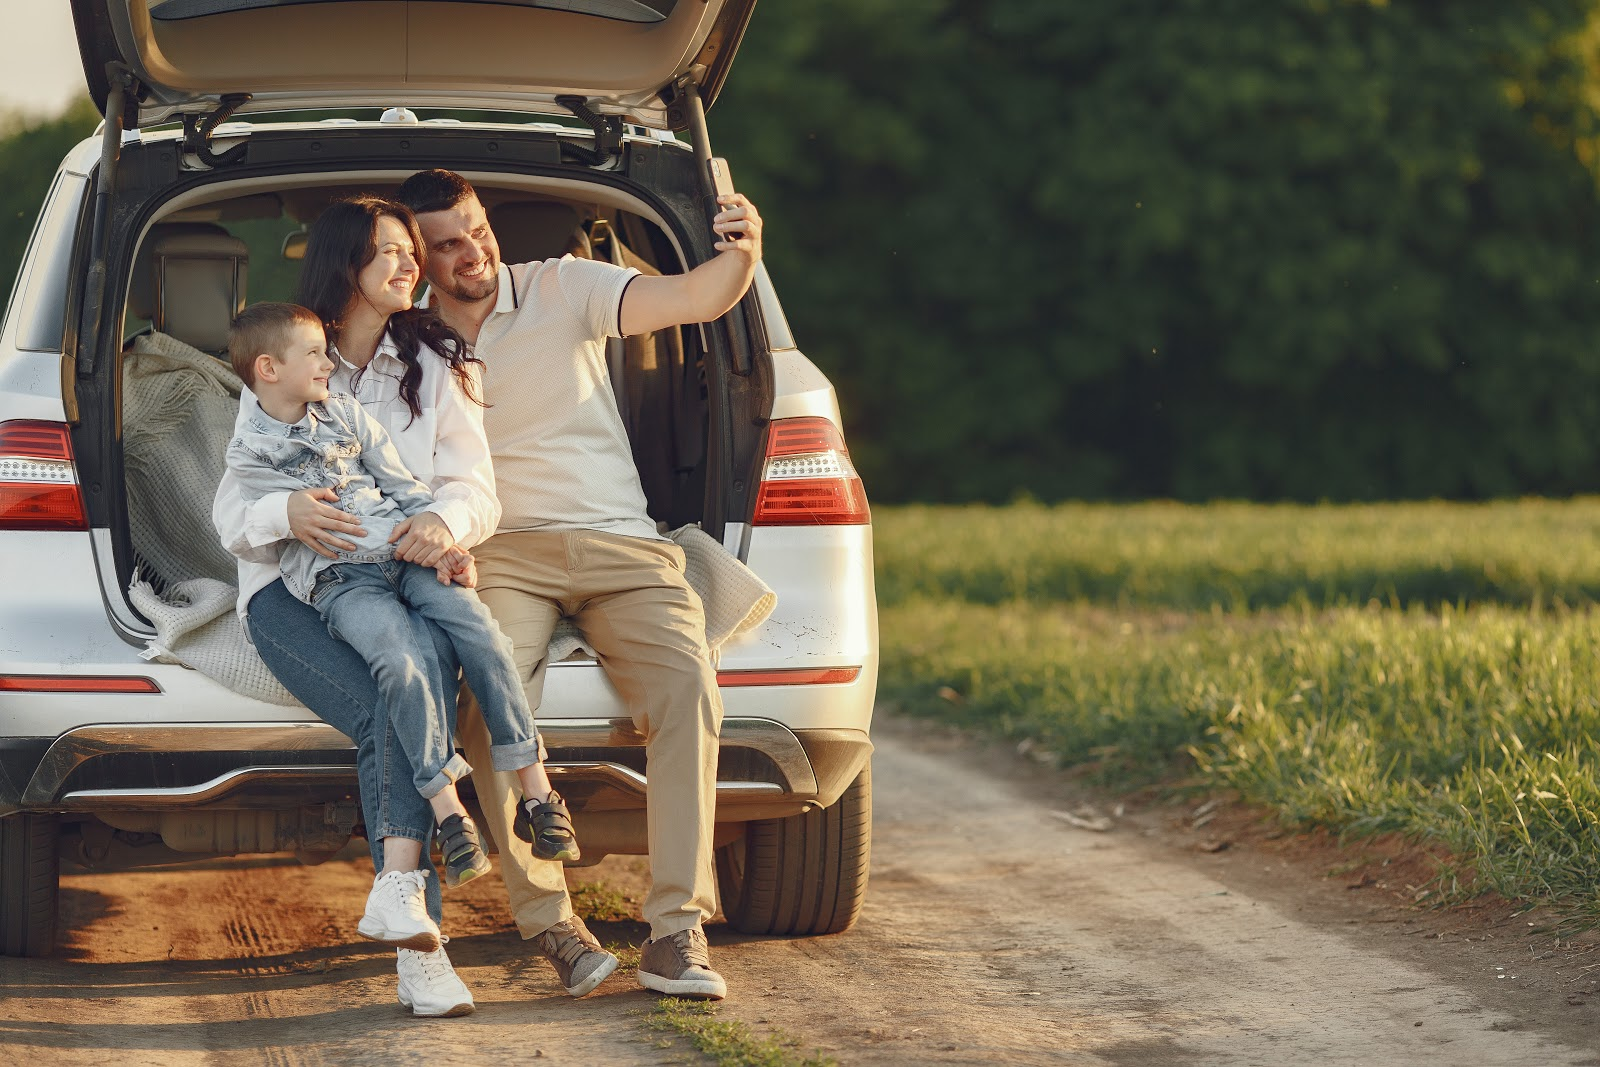 Family taking photo in open trunk of car